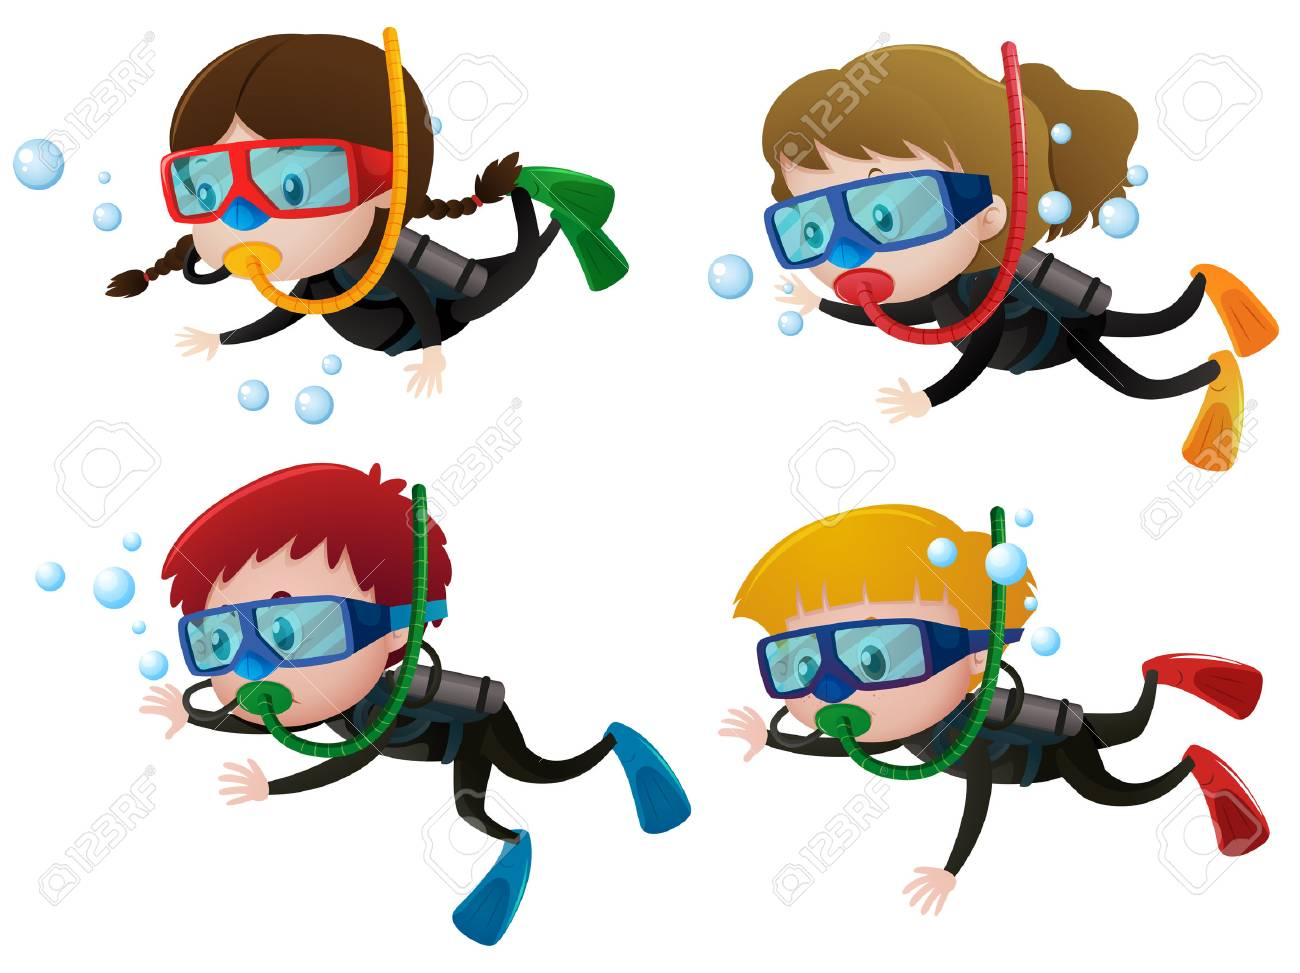 e650aee86d16a Four Kids Scuba Diving Underwater Illustration Royalty Free Cliparts ...